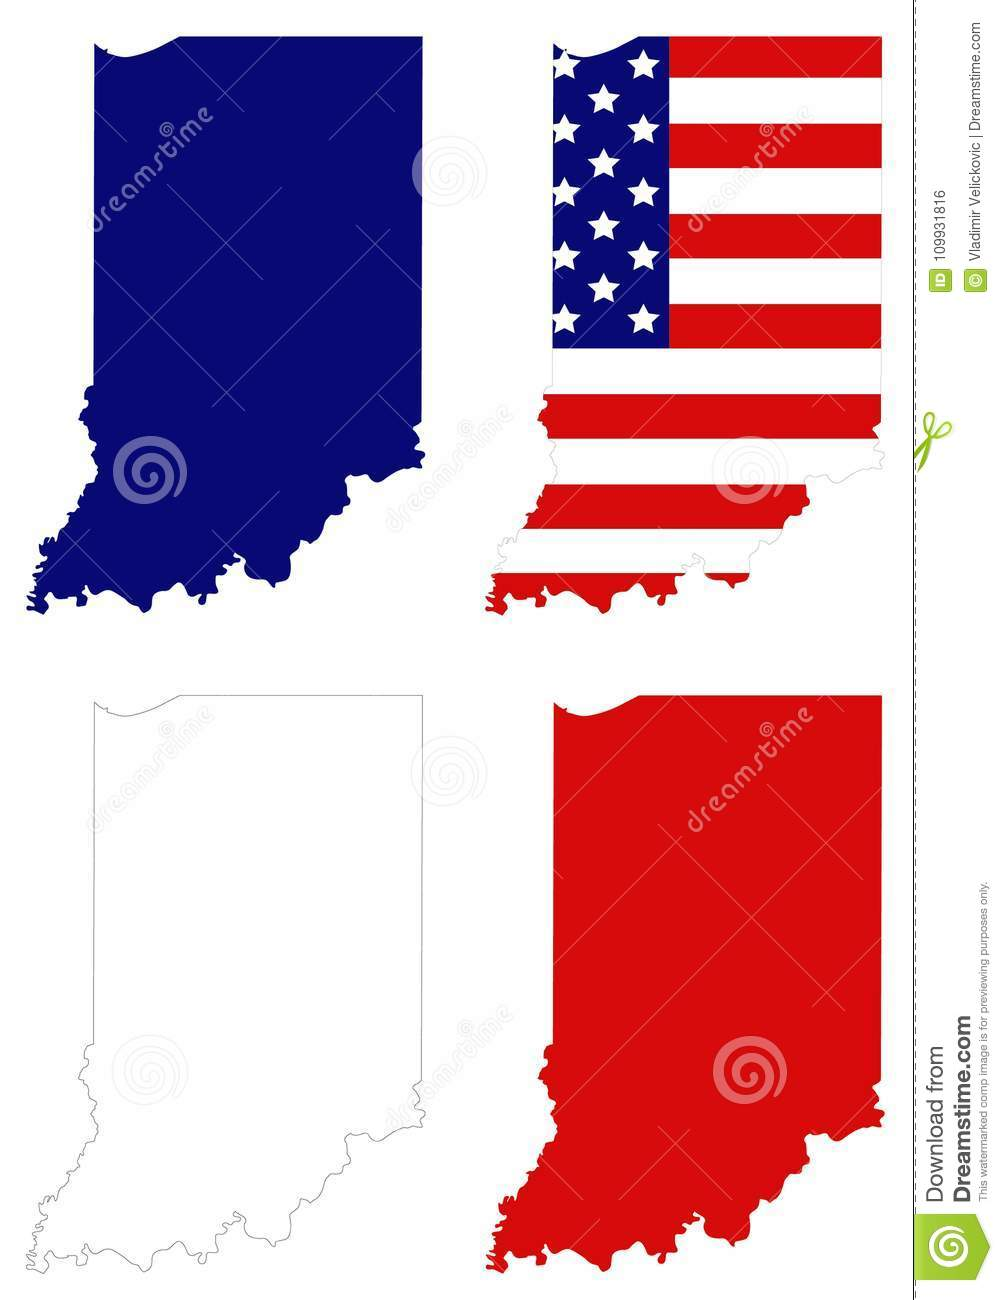 Indiana Map With USA Flag - State In The Midwestern Region Of The ...